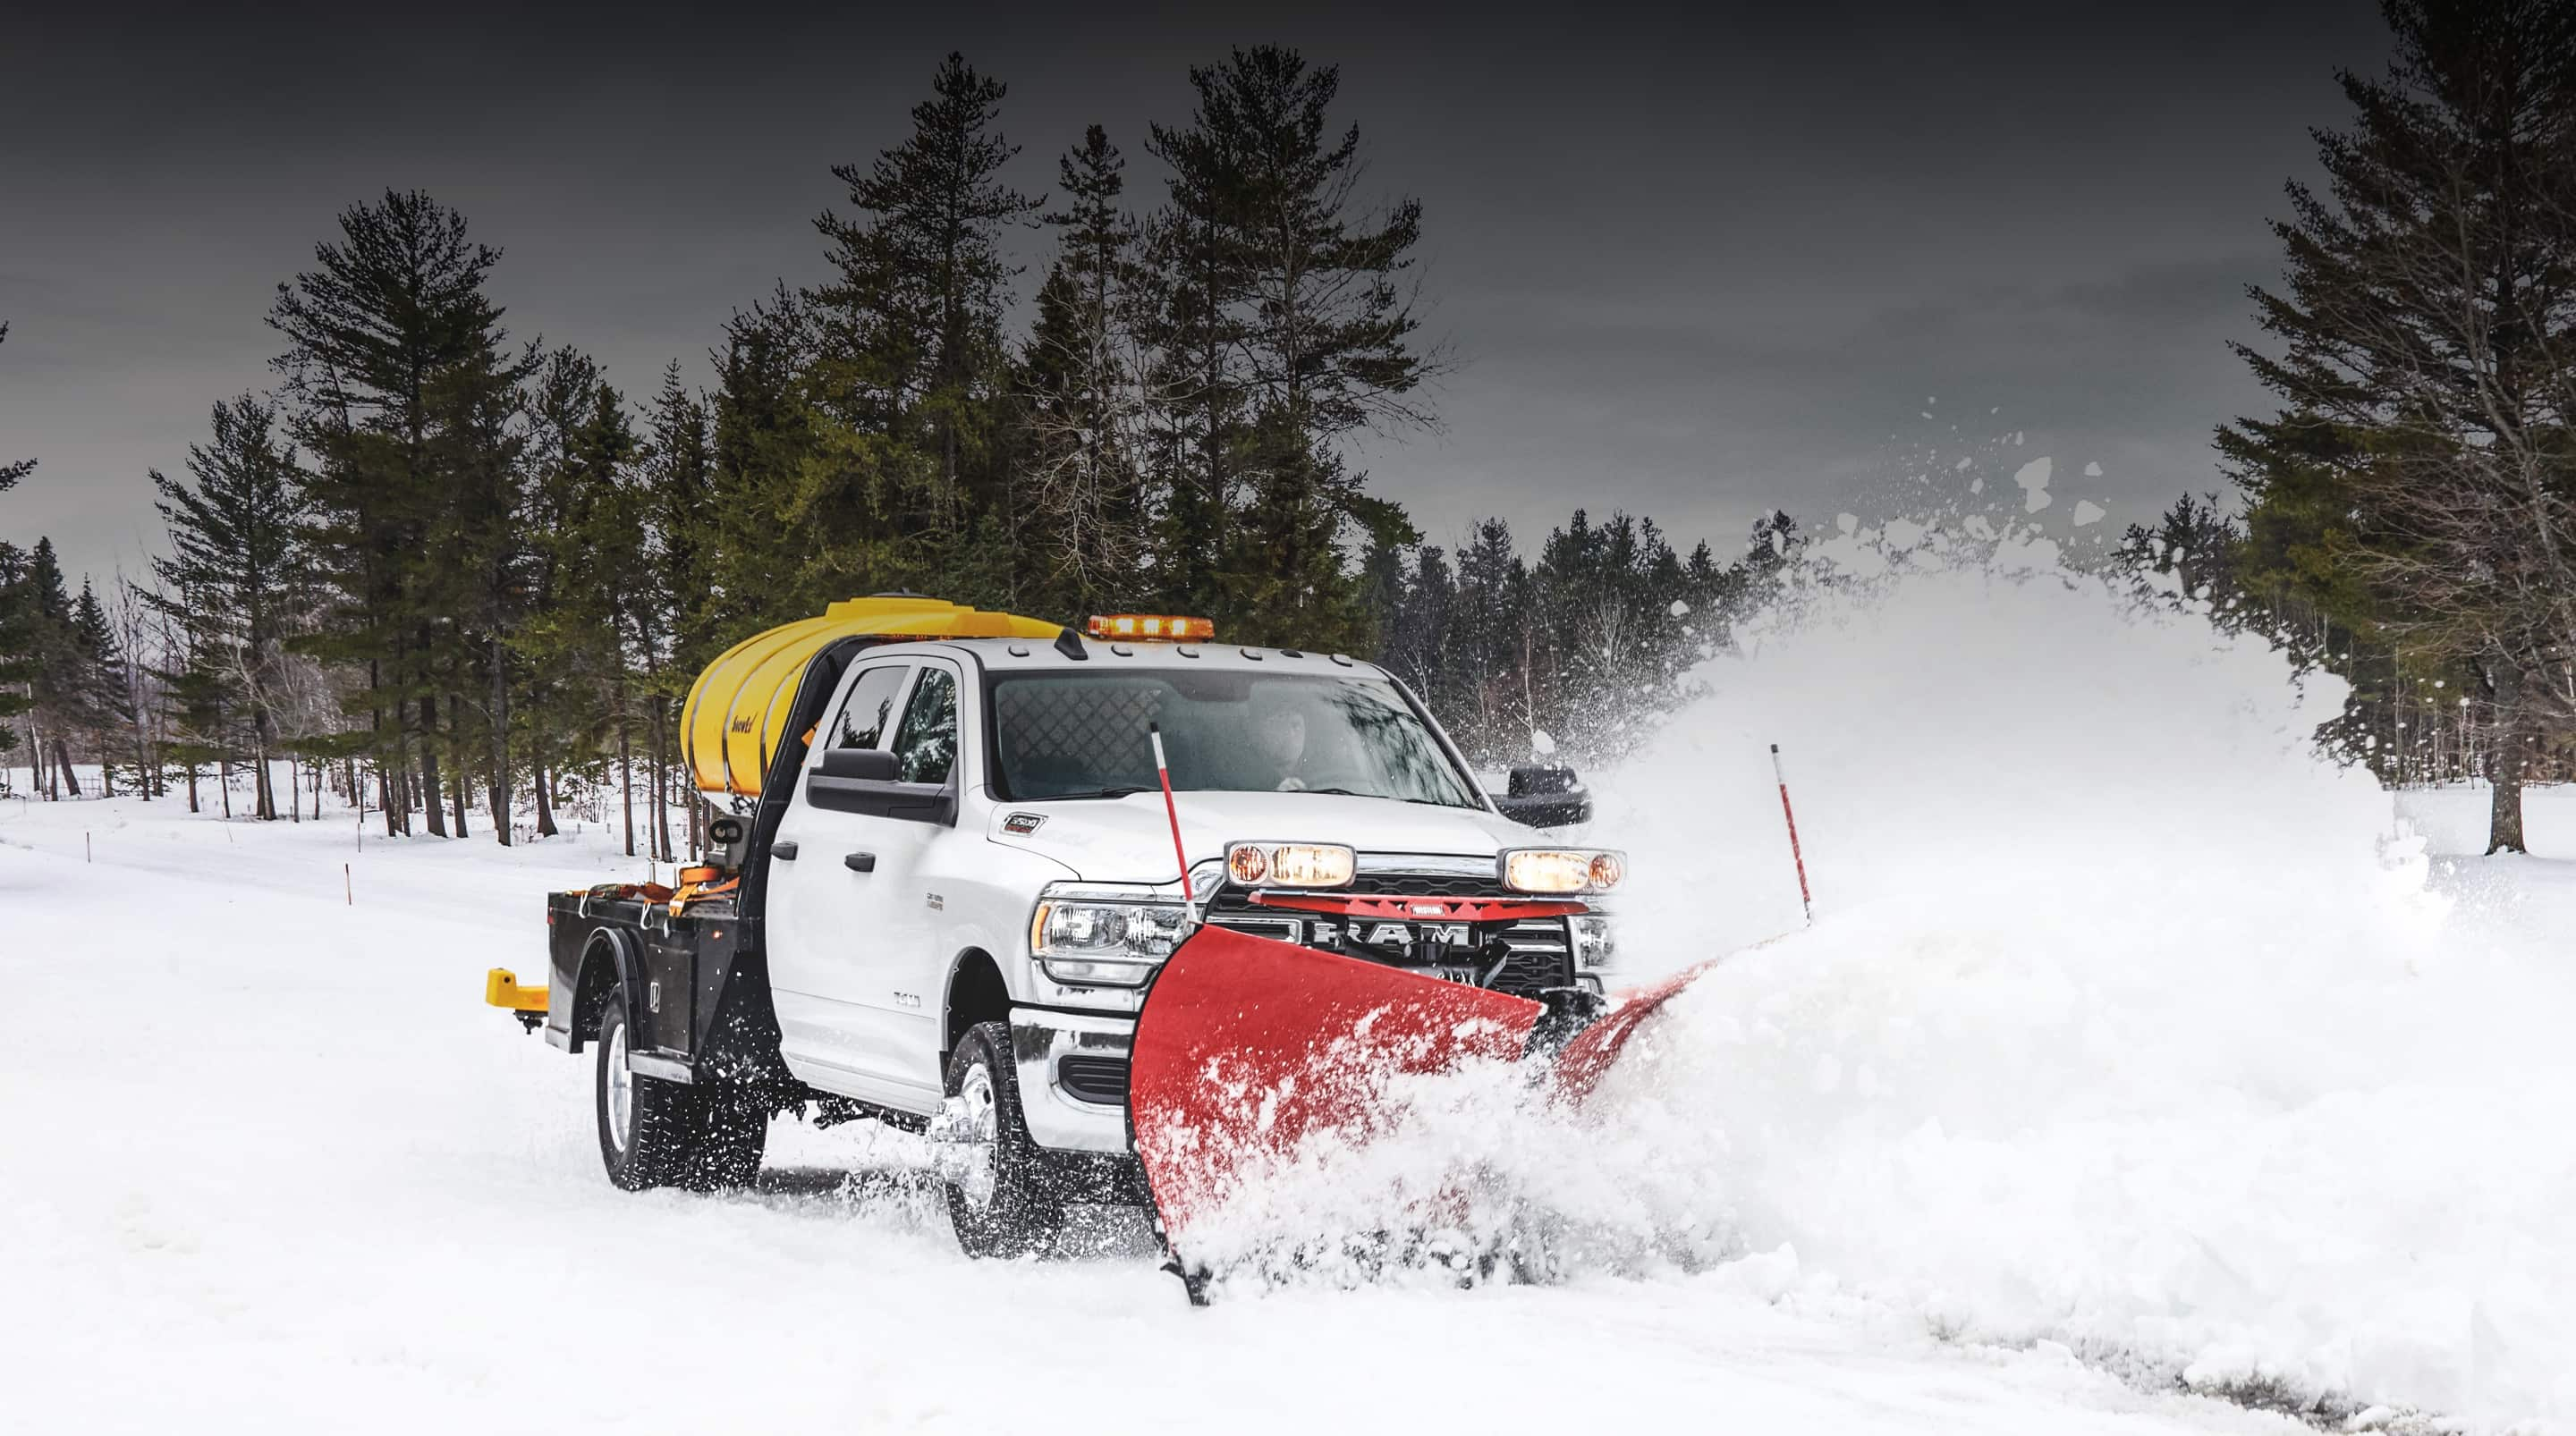 A 2020 Ram Chassis Cab with a snow plow upfit clearing a path through the snow.